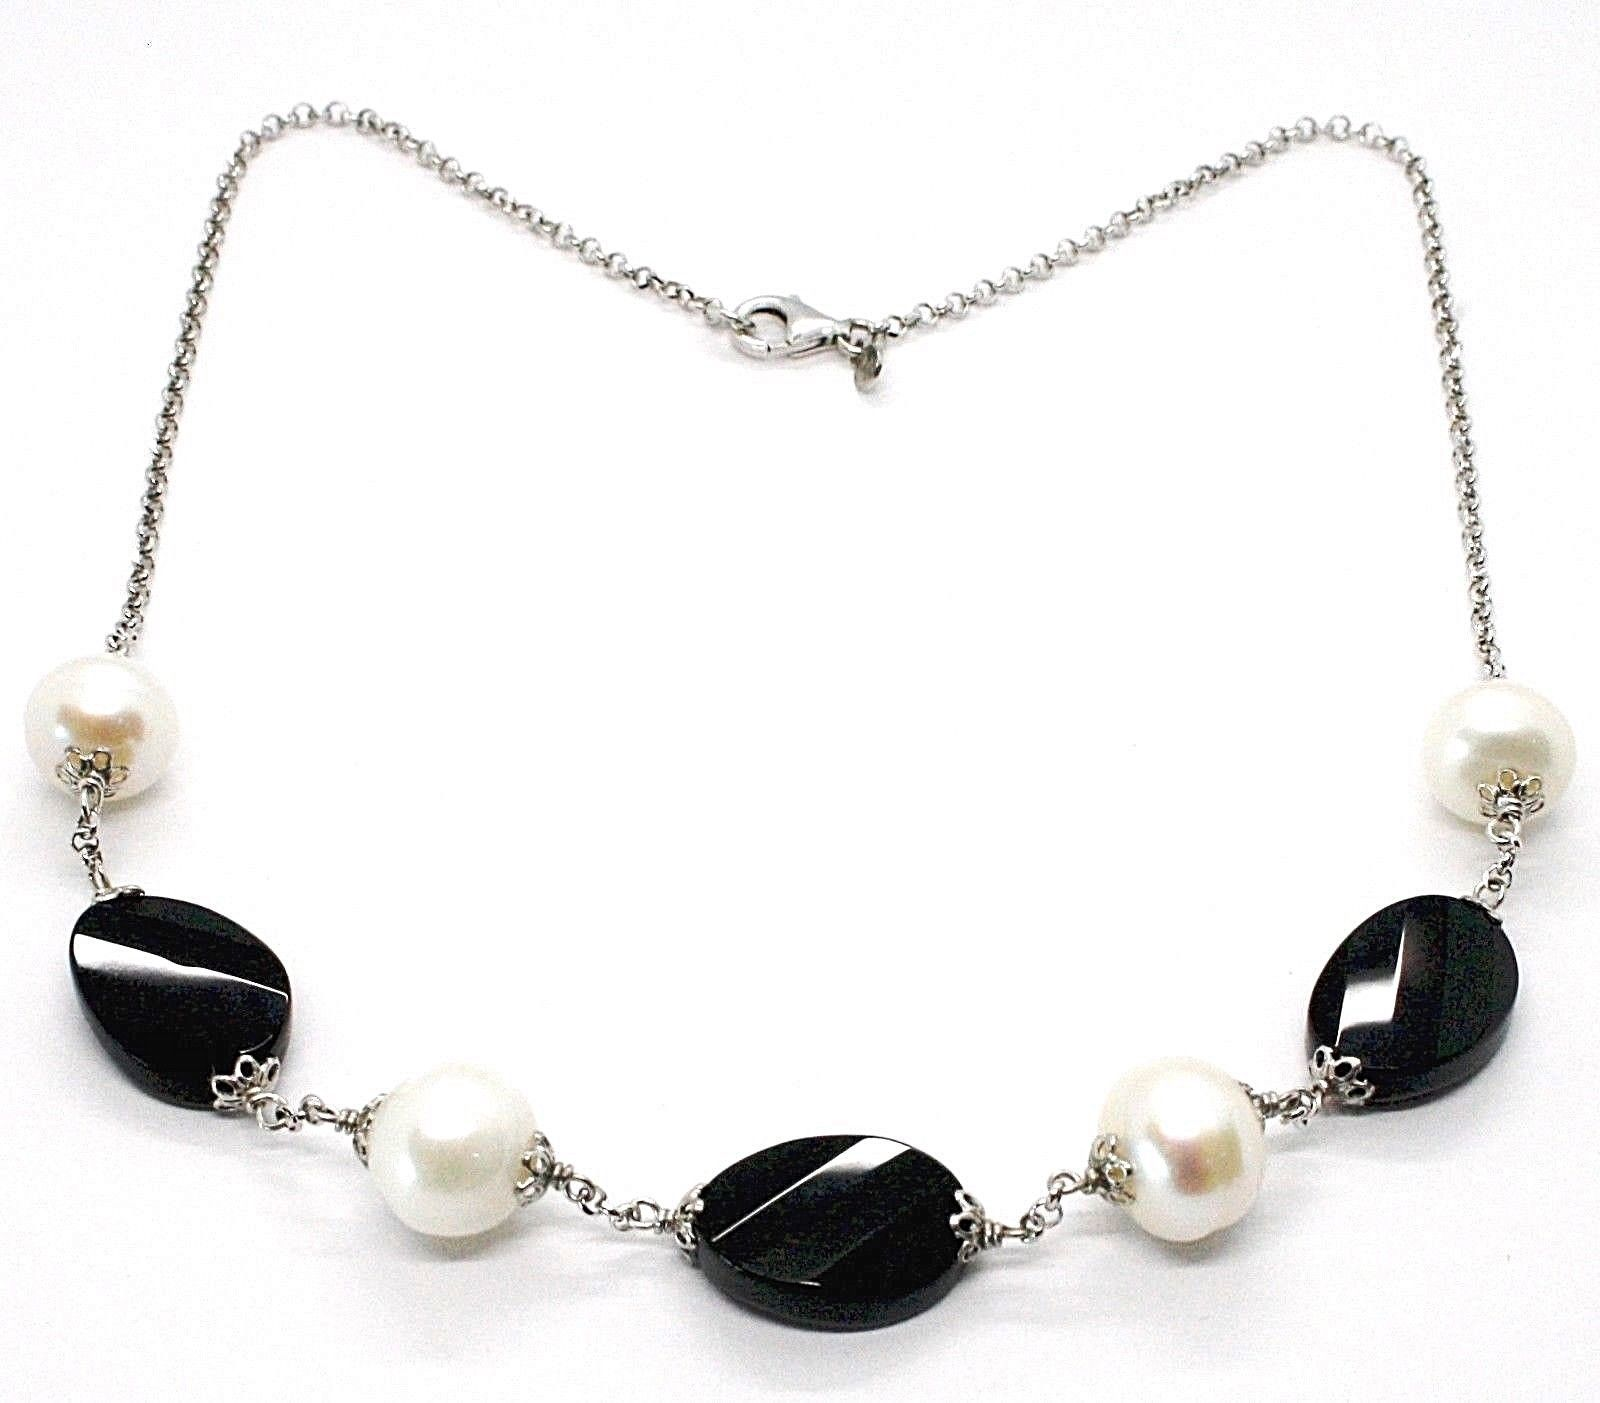 Necklace Silver 925, Onyx Black Oval Faceted, Pearls, 44 cm, Chain Rolo '